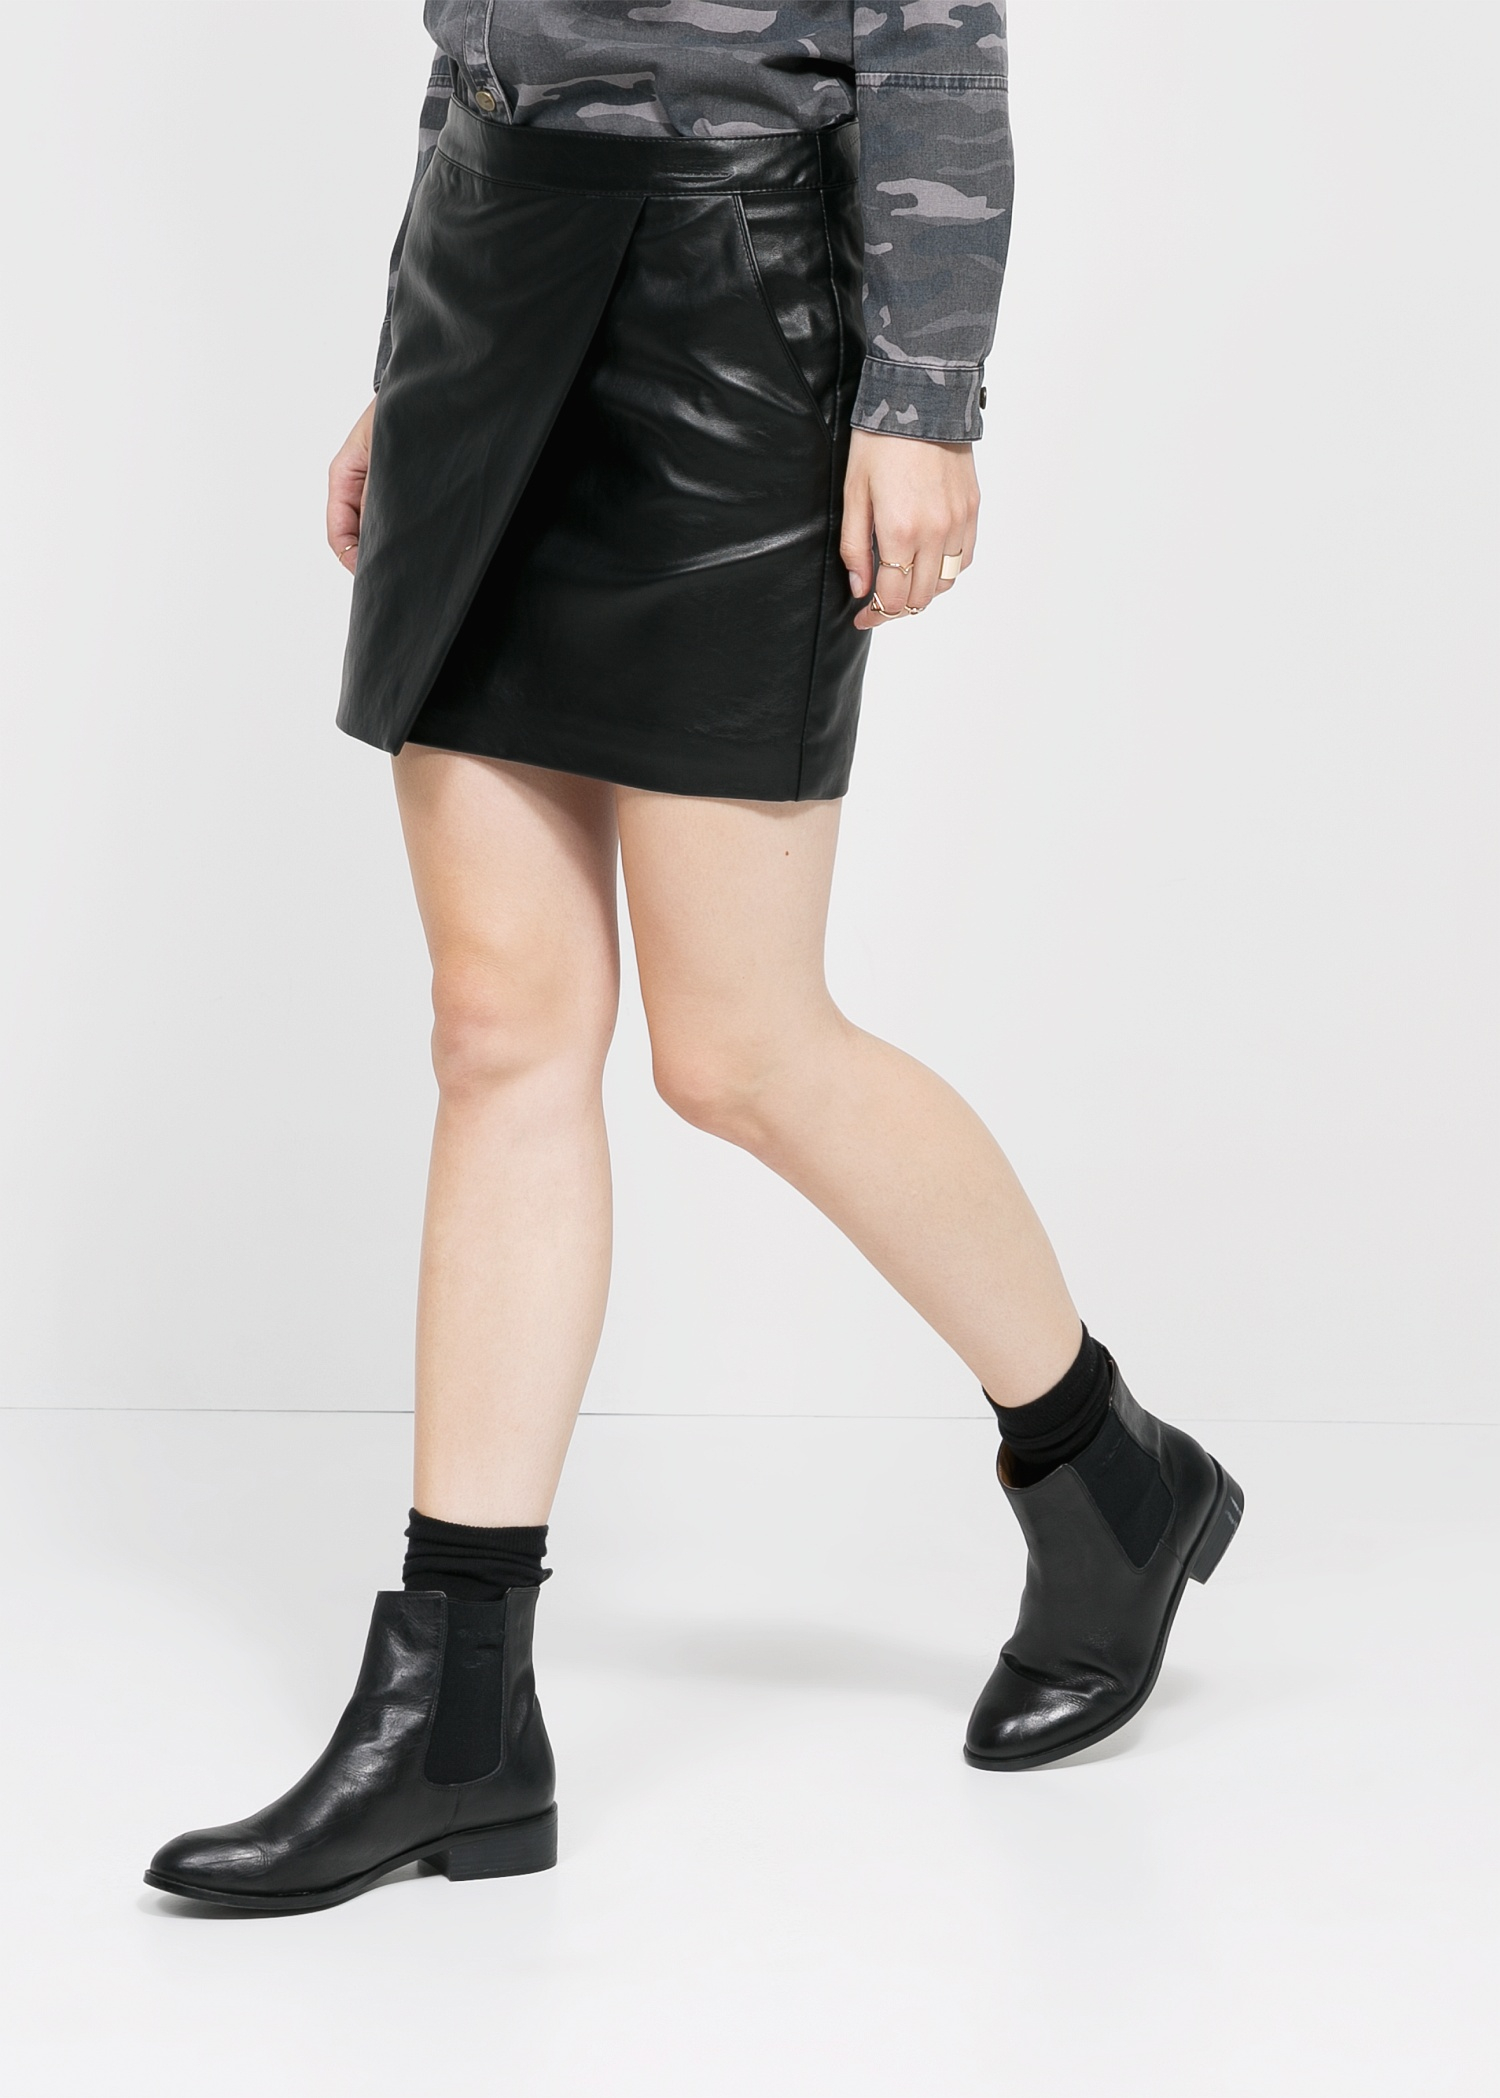 Mango Faux-Leather Wrap Skirt in Black | Lyst